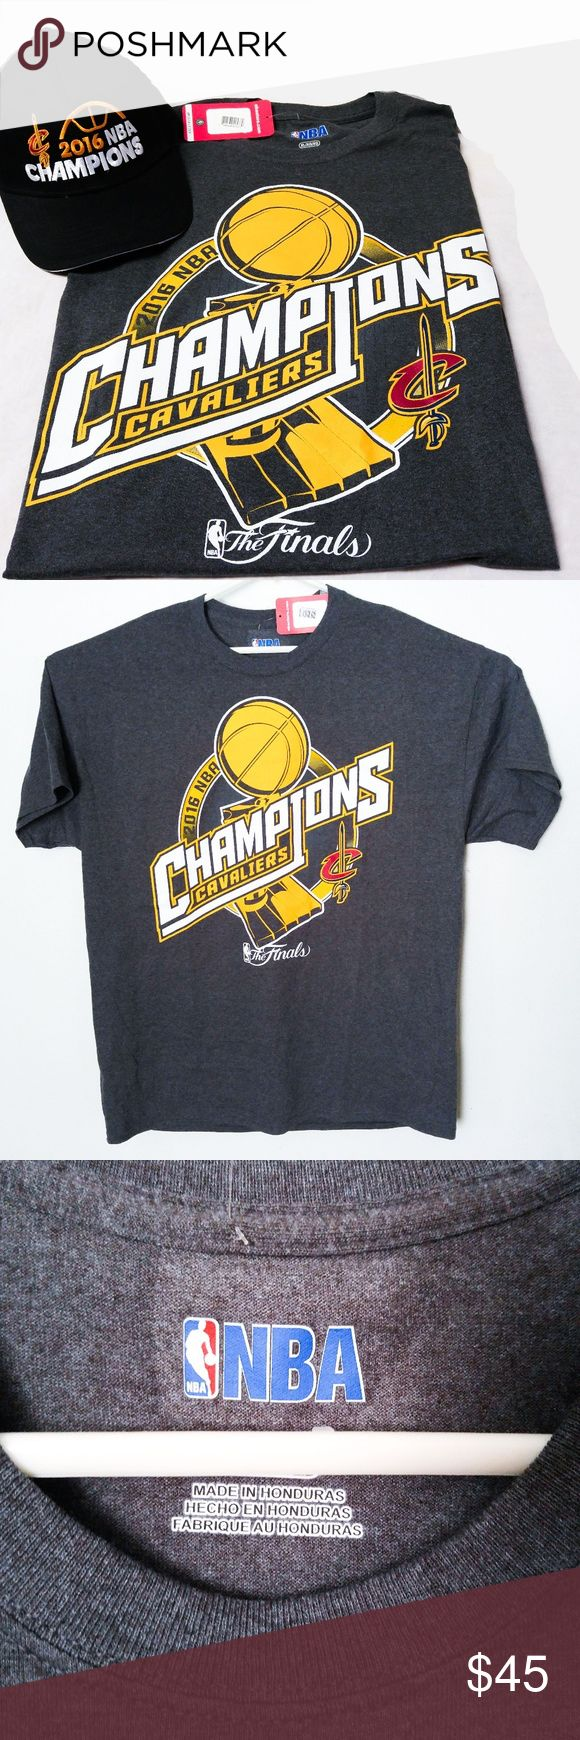 NWT XL NBA Cleveland Cavaliers T-Shirt Hat Adidas NWT NBA Cleveland Cavaliers T-Shirt & Hat Adidas 2016 Champions Finals Sz XL The t-shirt is a heather grey in a size XL.   The hat is black with an adjustable back.   Both are New with Tags. adidas Shirts Tees - Short Sleeve